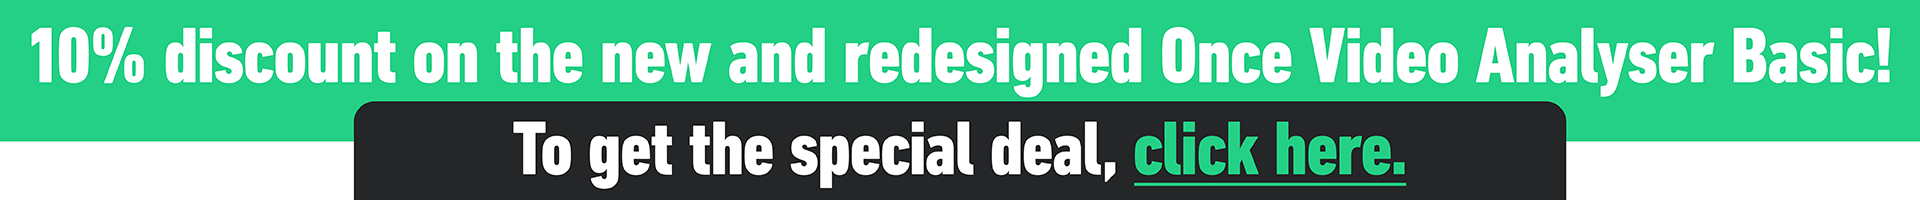 Once Basic redesign special offer 1920